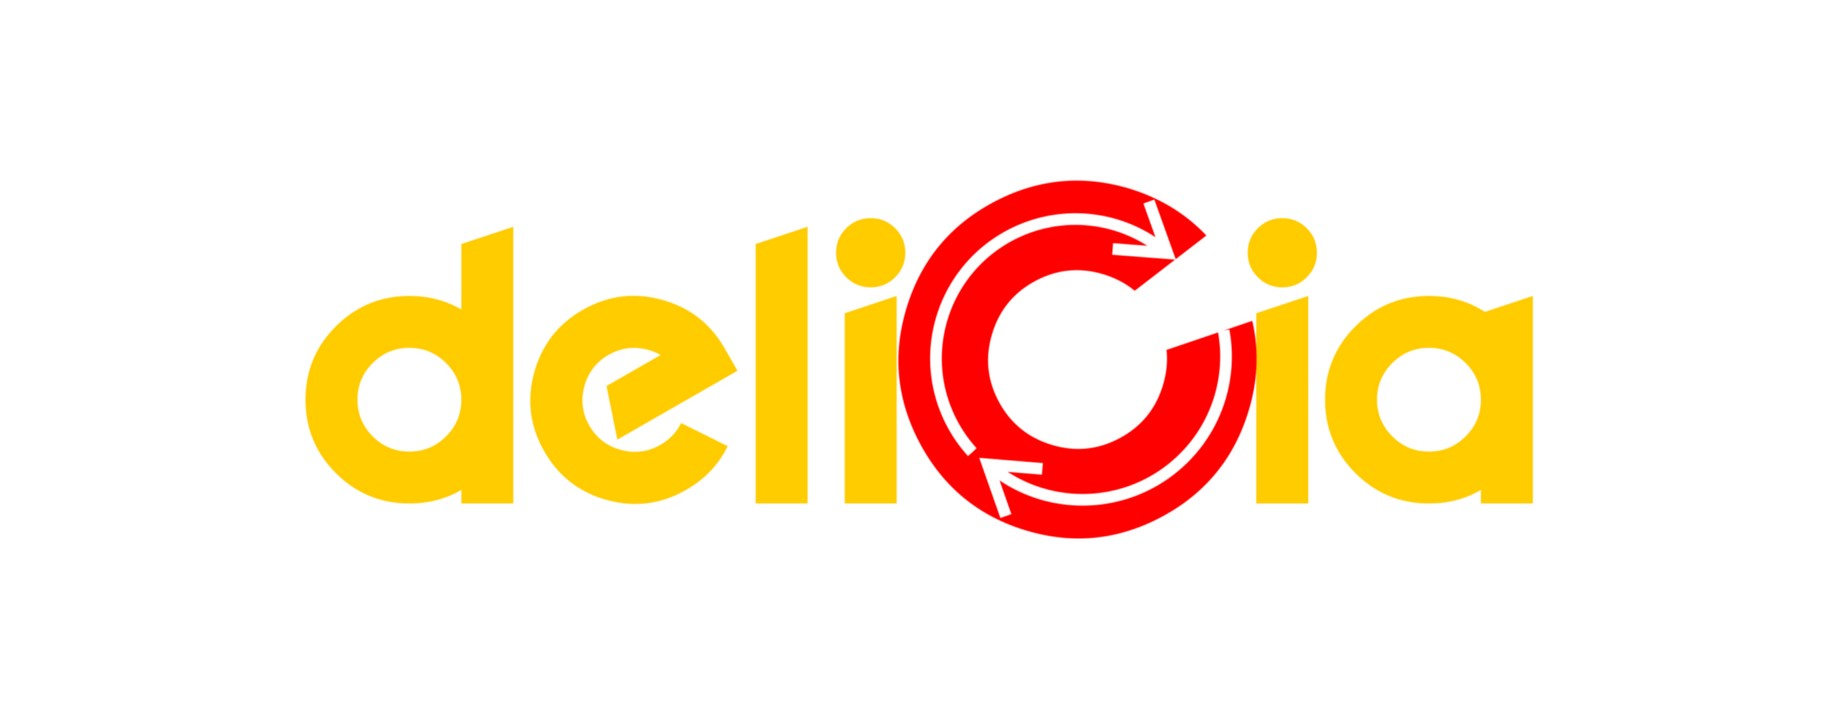 Delicia Global Food Network